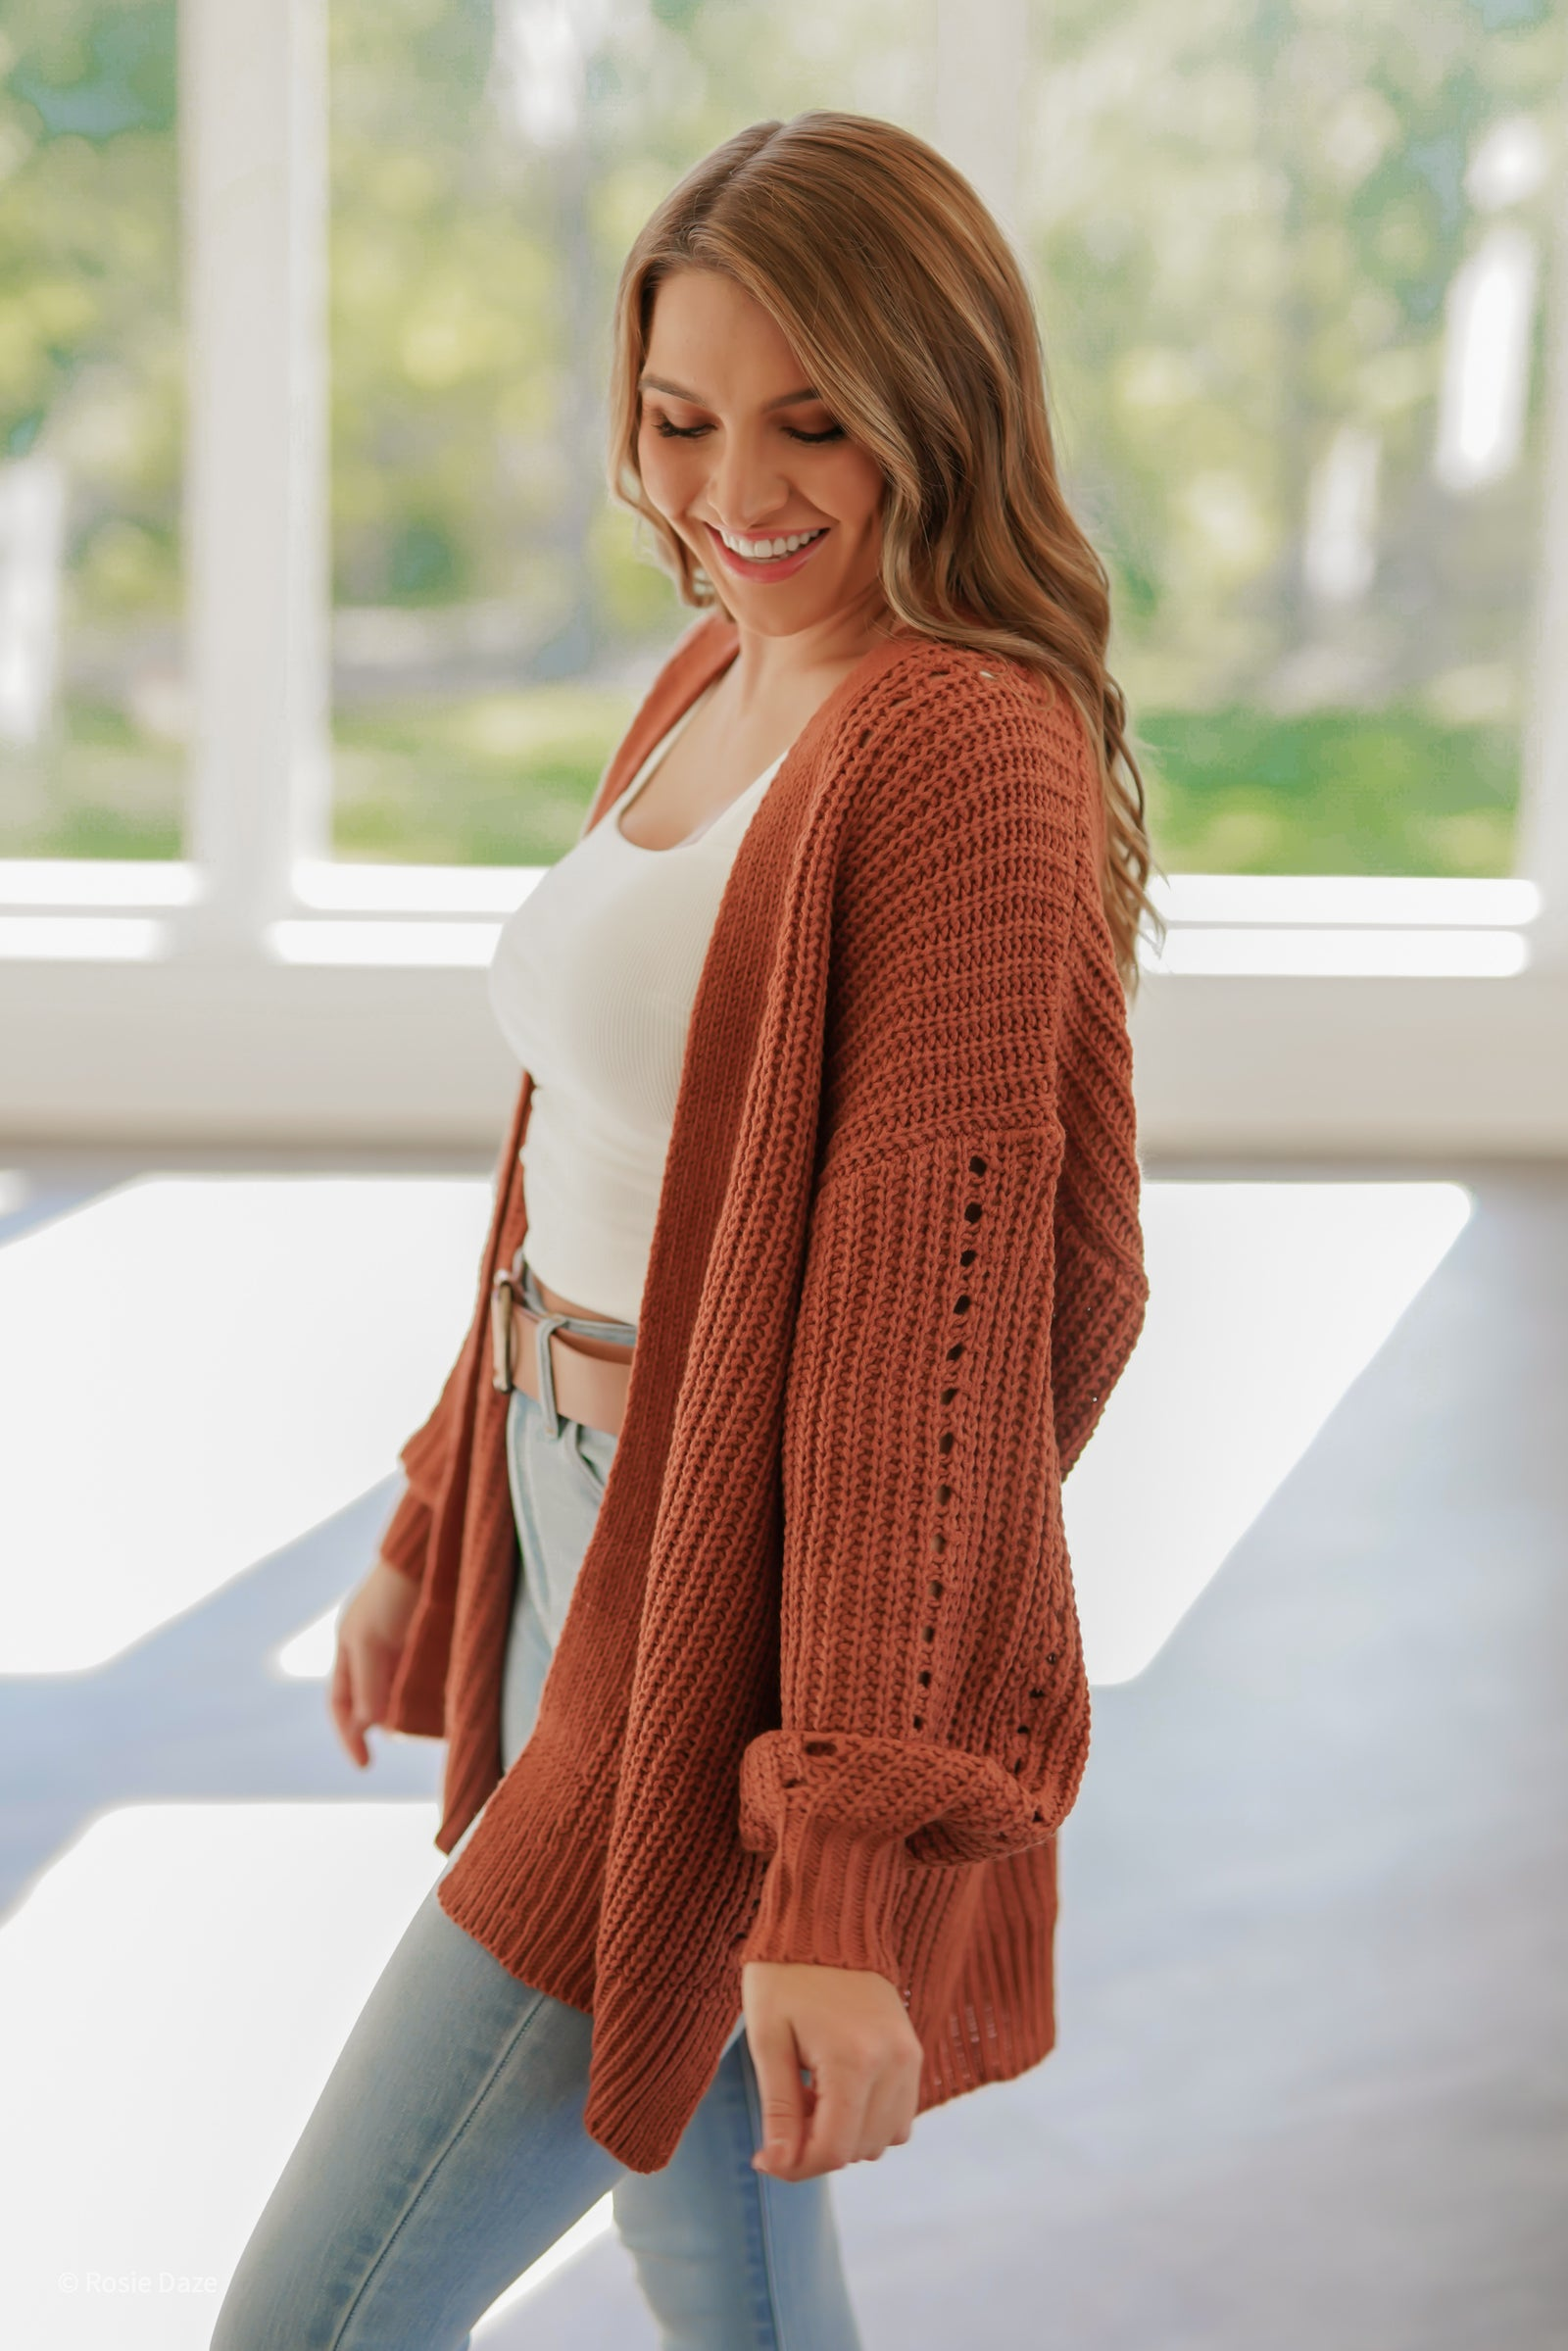 Folklore Cardigan - Clay